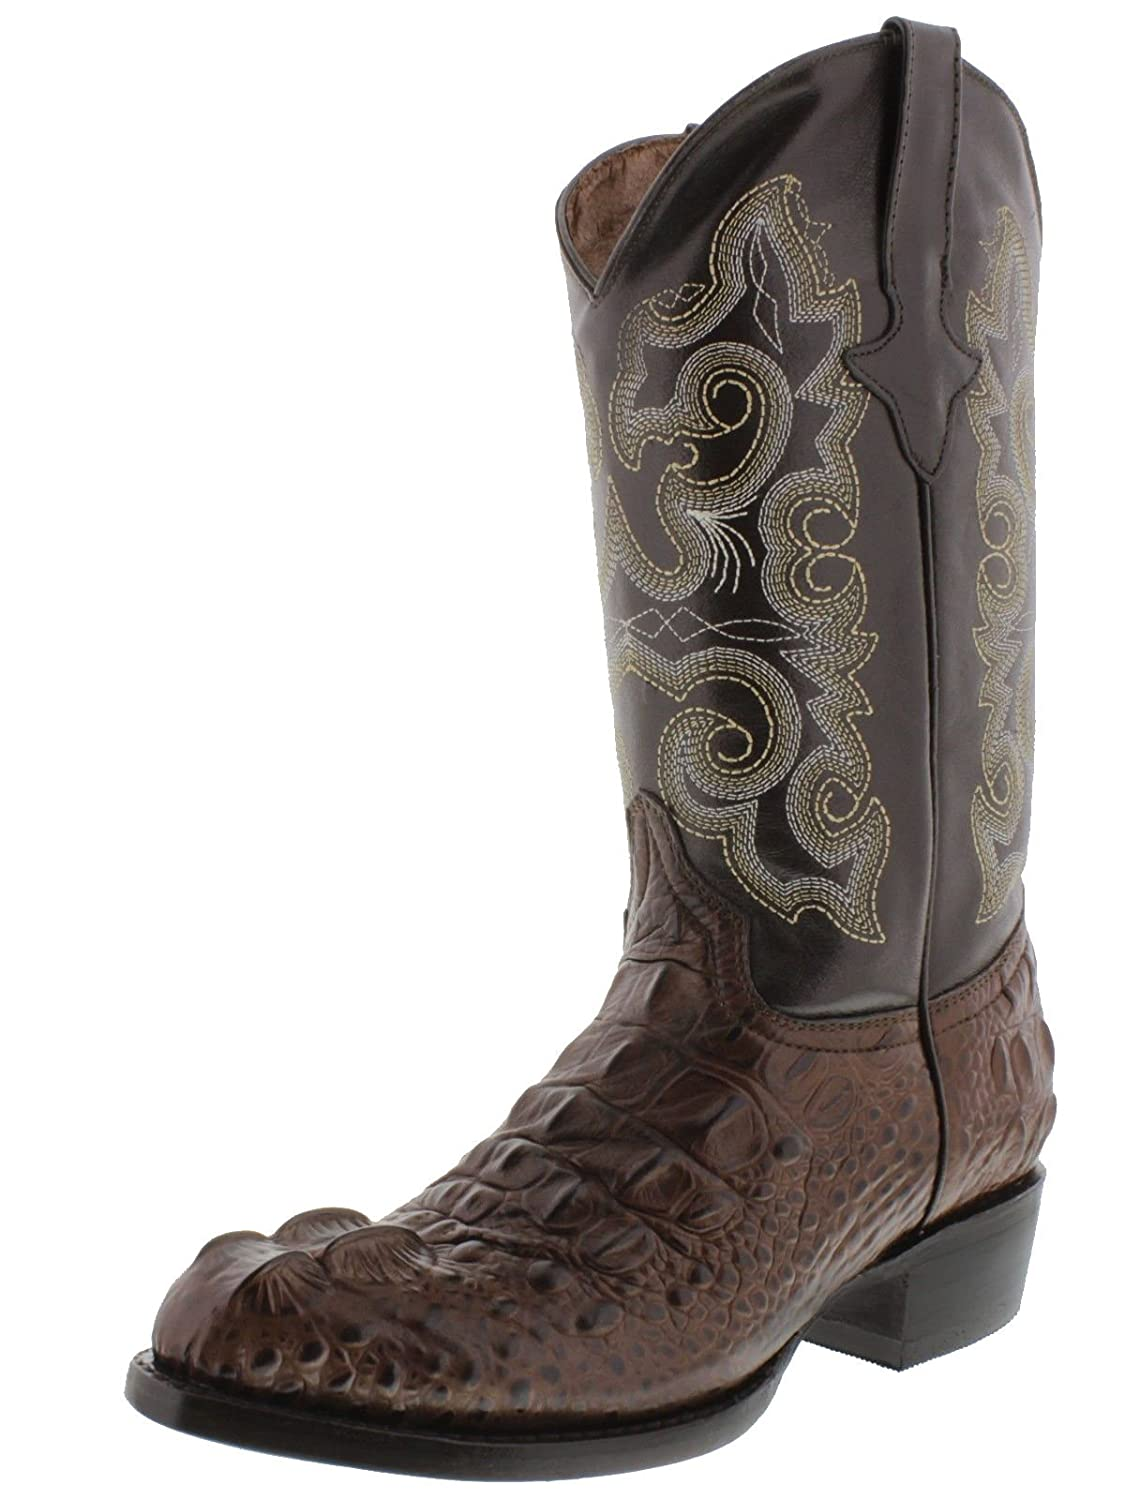 Men's Crocodile Alligator Head Lather Cowboy Western Rounded Boots Brown